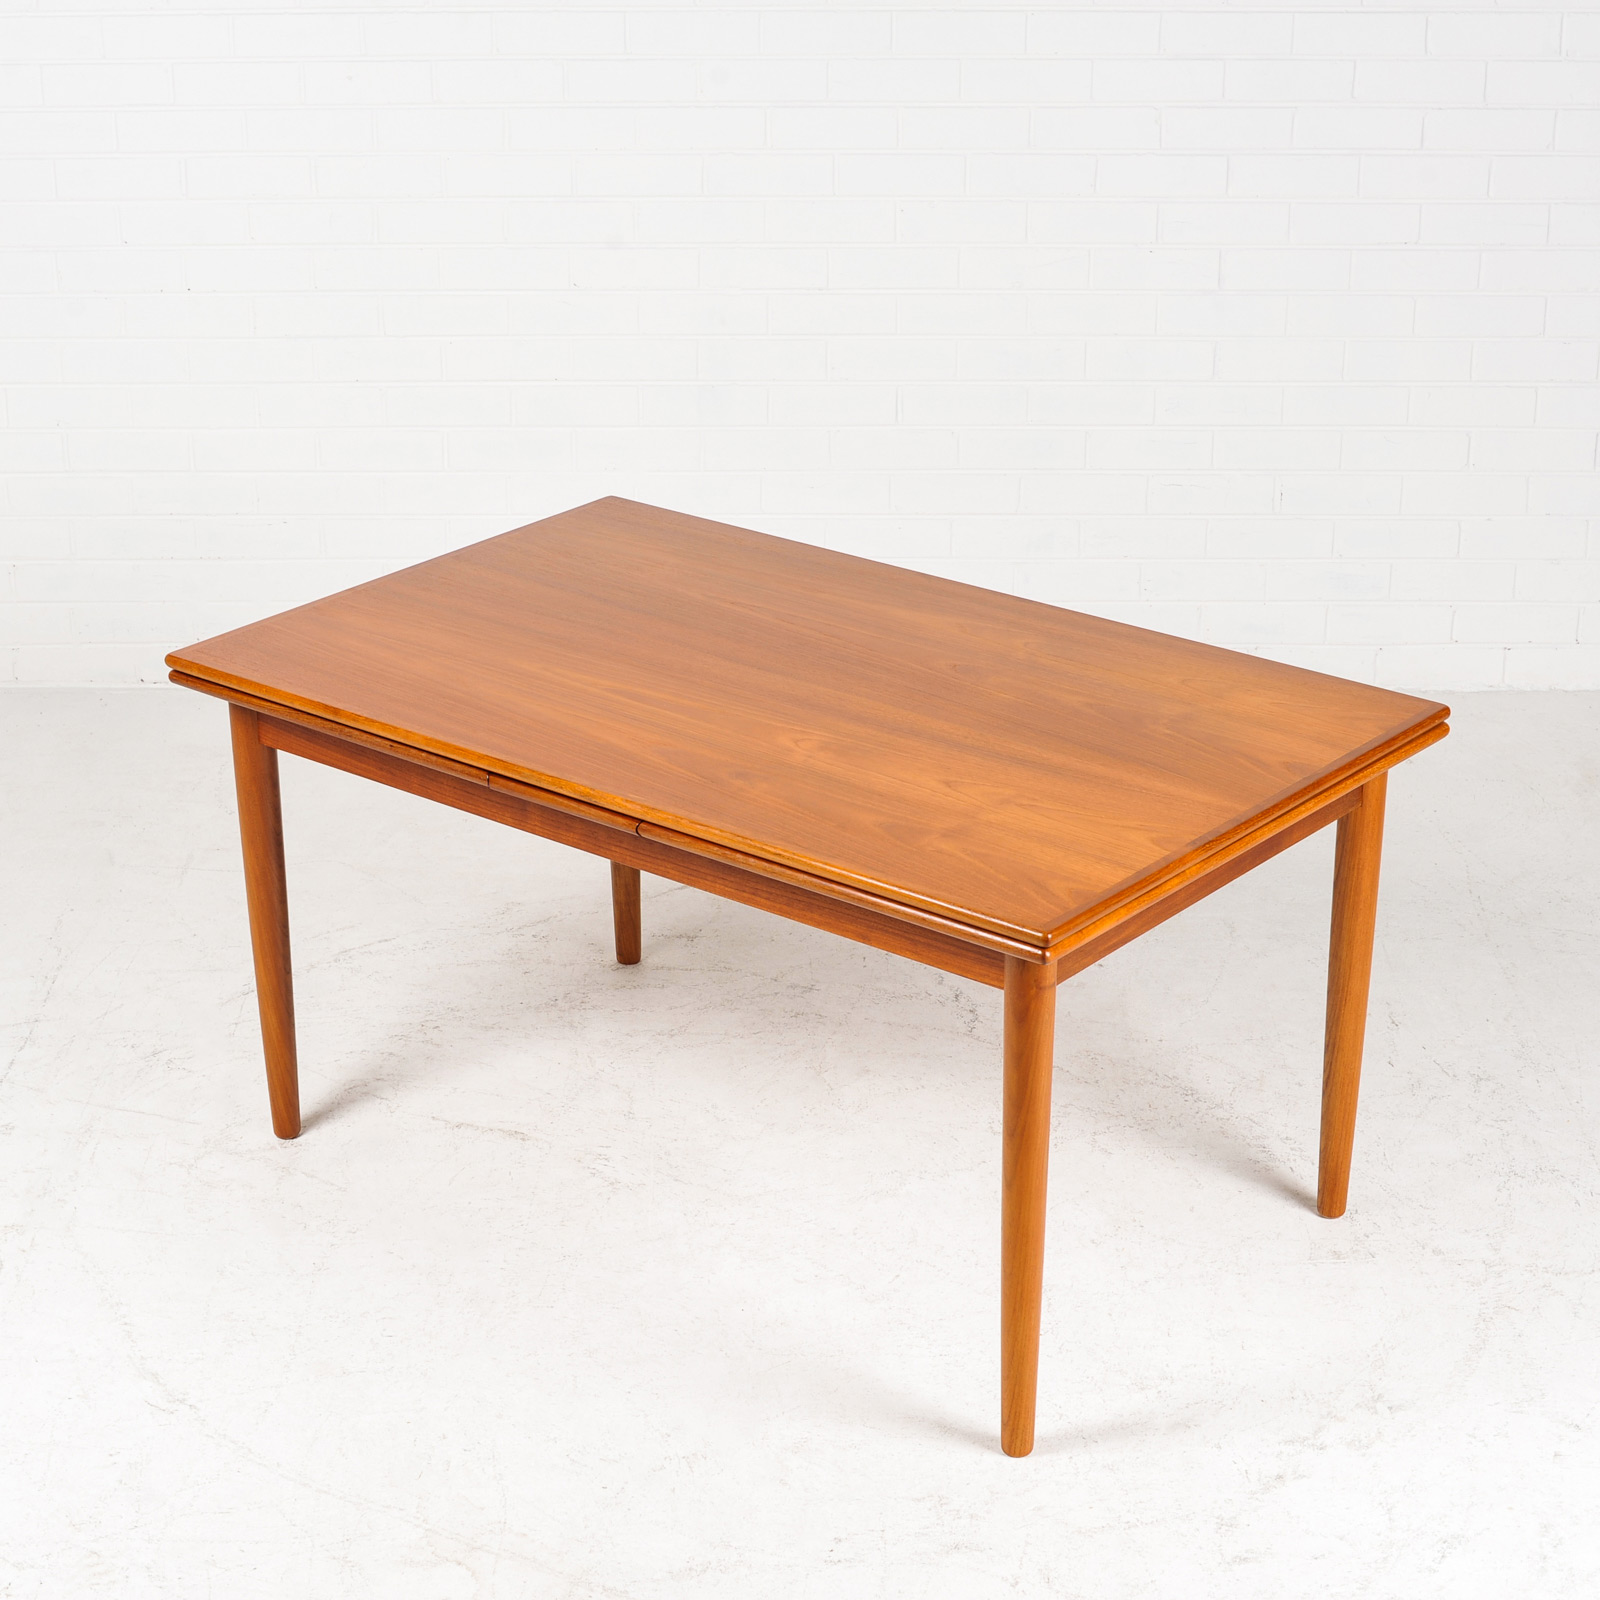 Rectangular Dining Table In Teak With Solid Edge 1960s